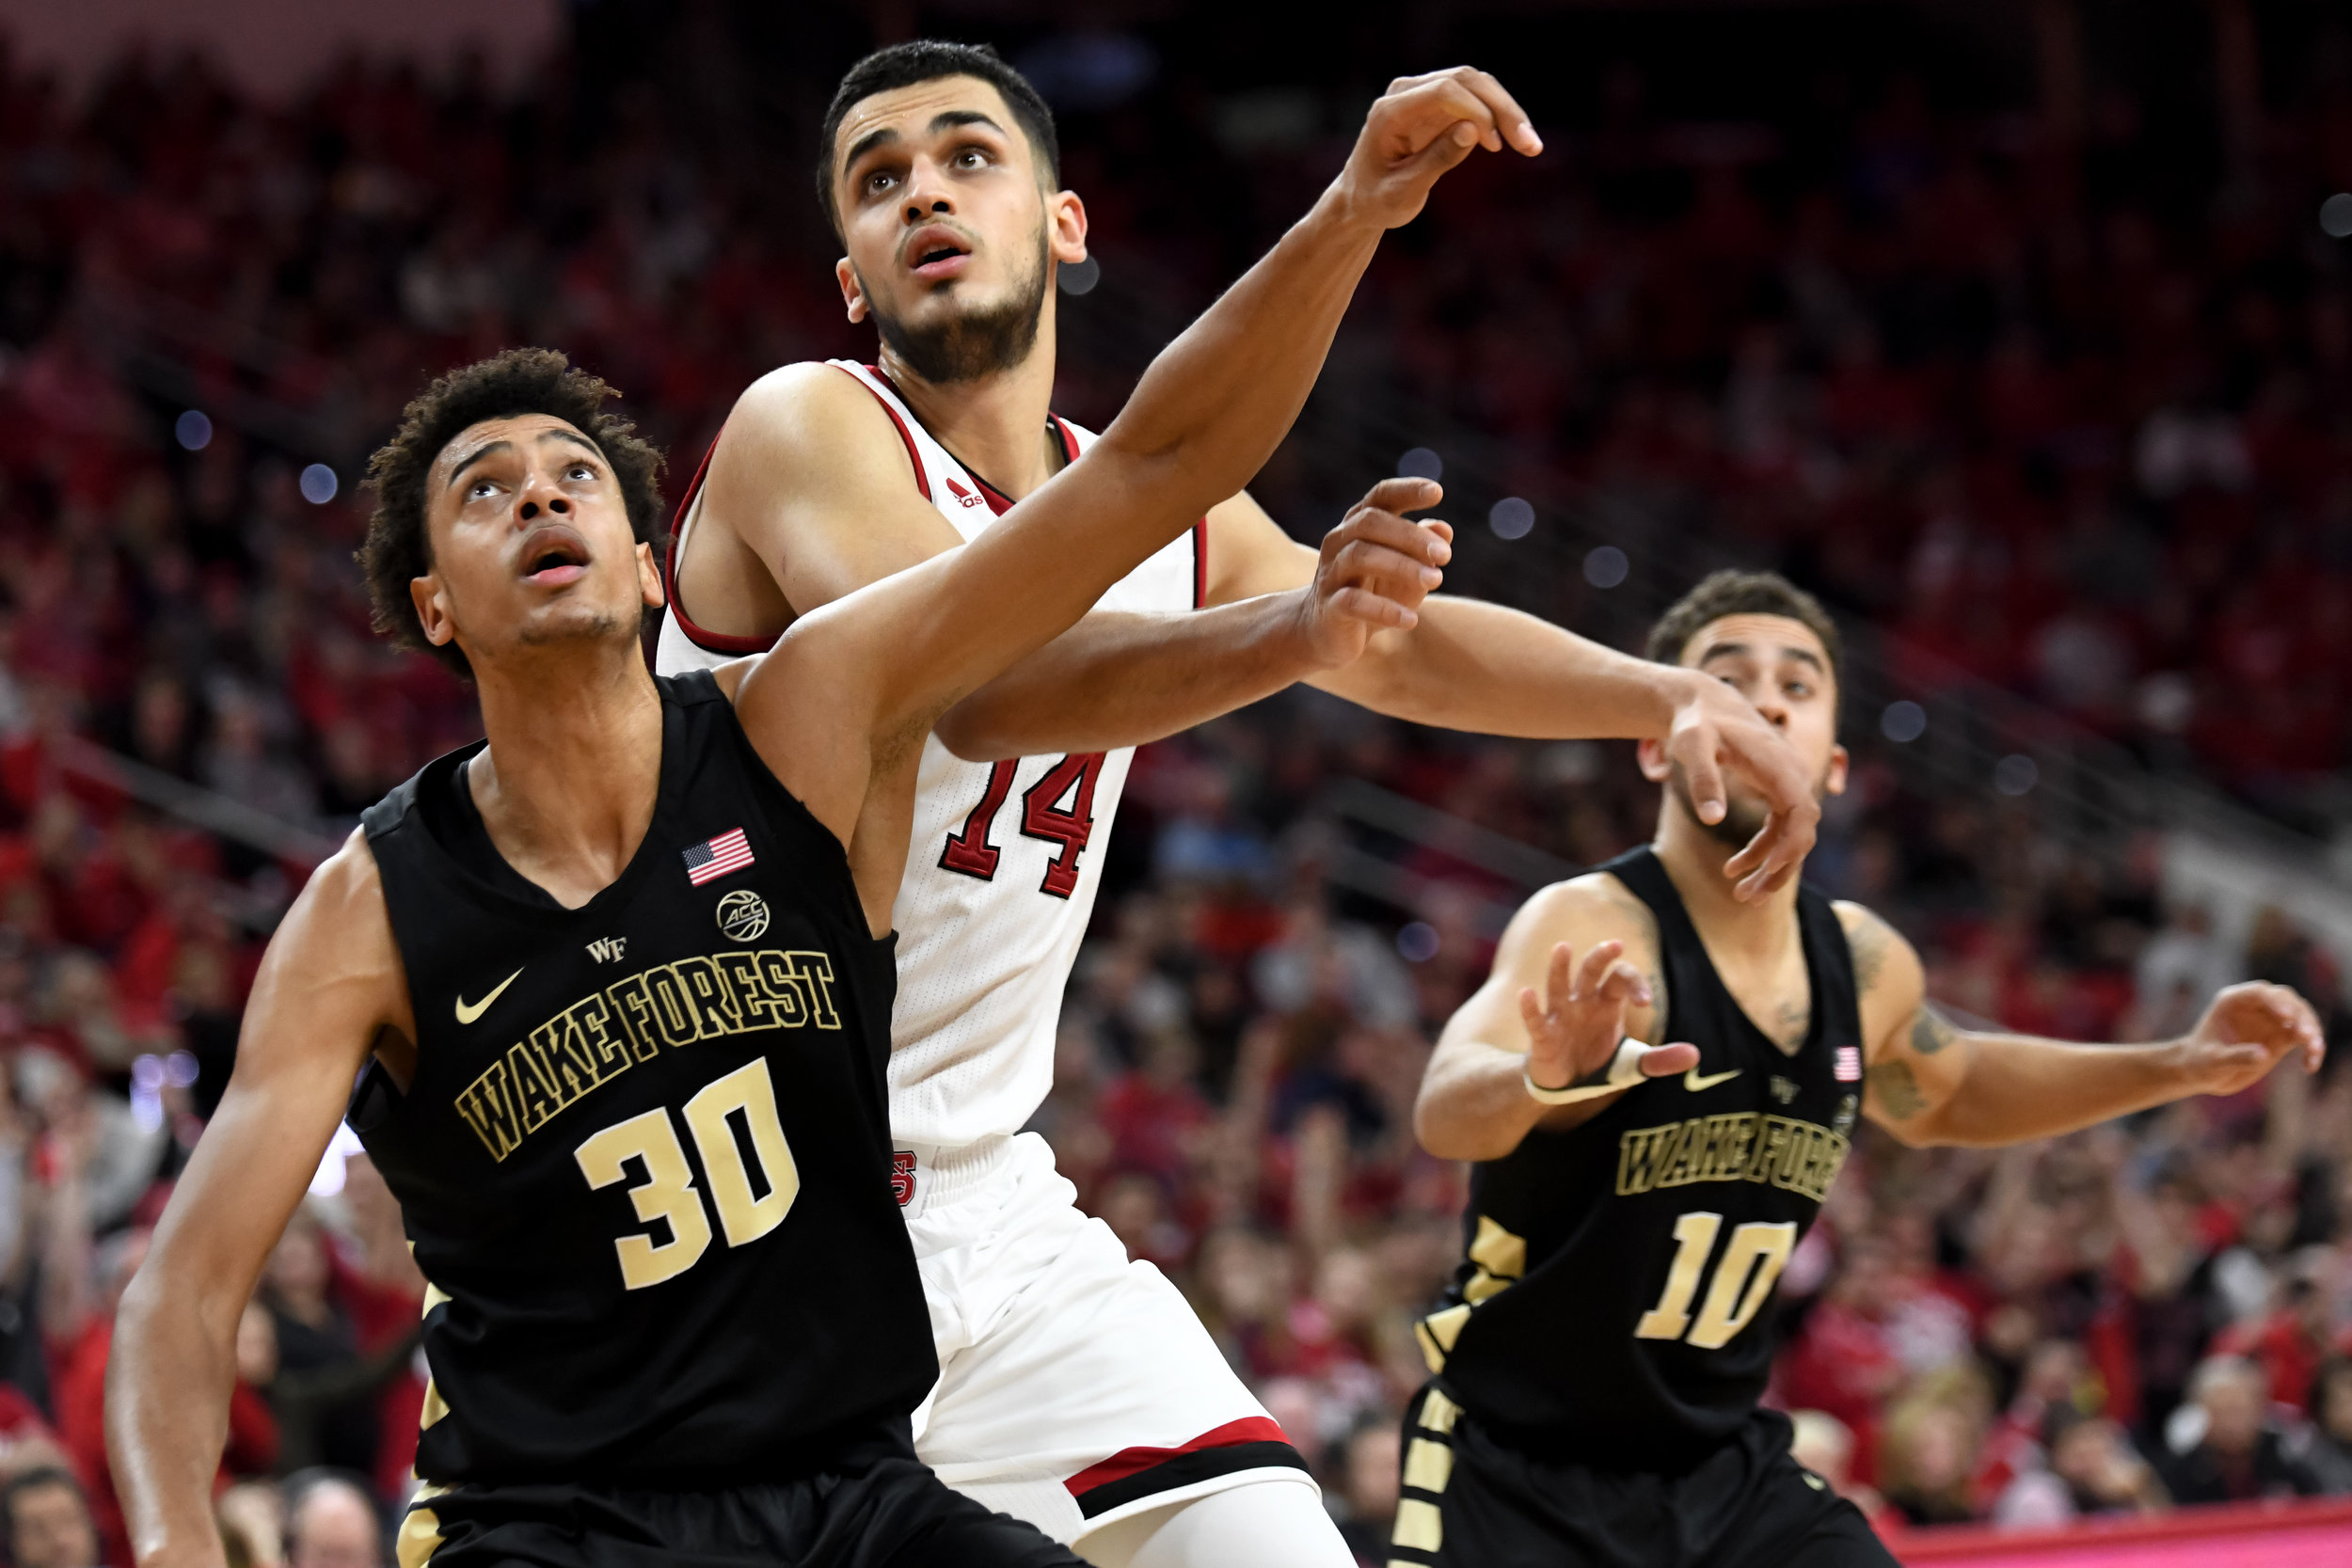 Wake Forest at NC State Gallery-44.jpg